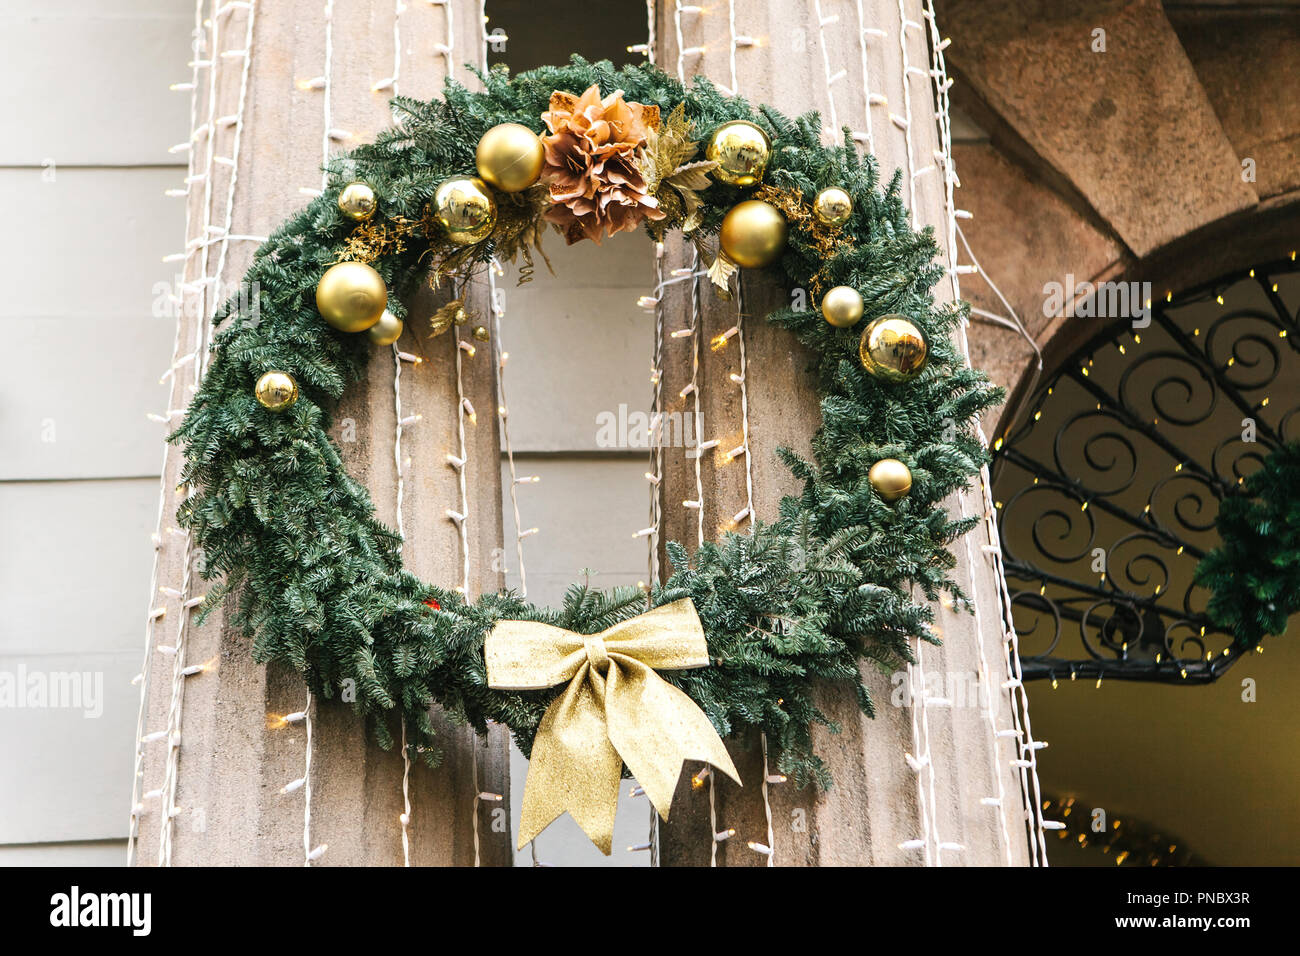 christmas decorations on the street in prague in the czech republic a traditional christmas wreath decorates the columns of the building